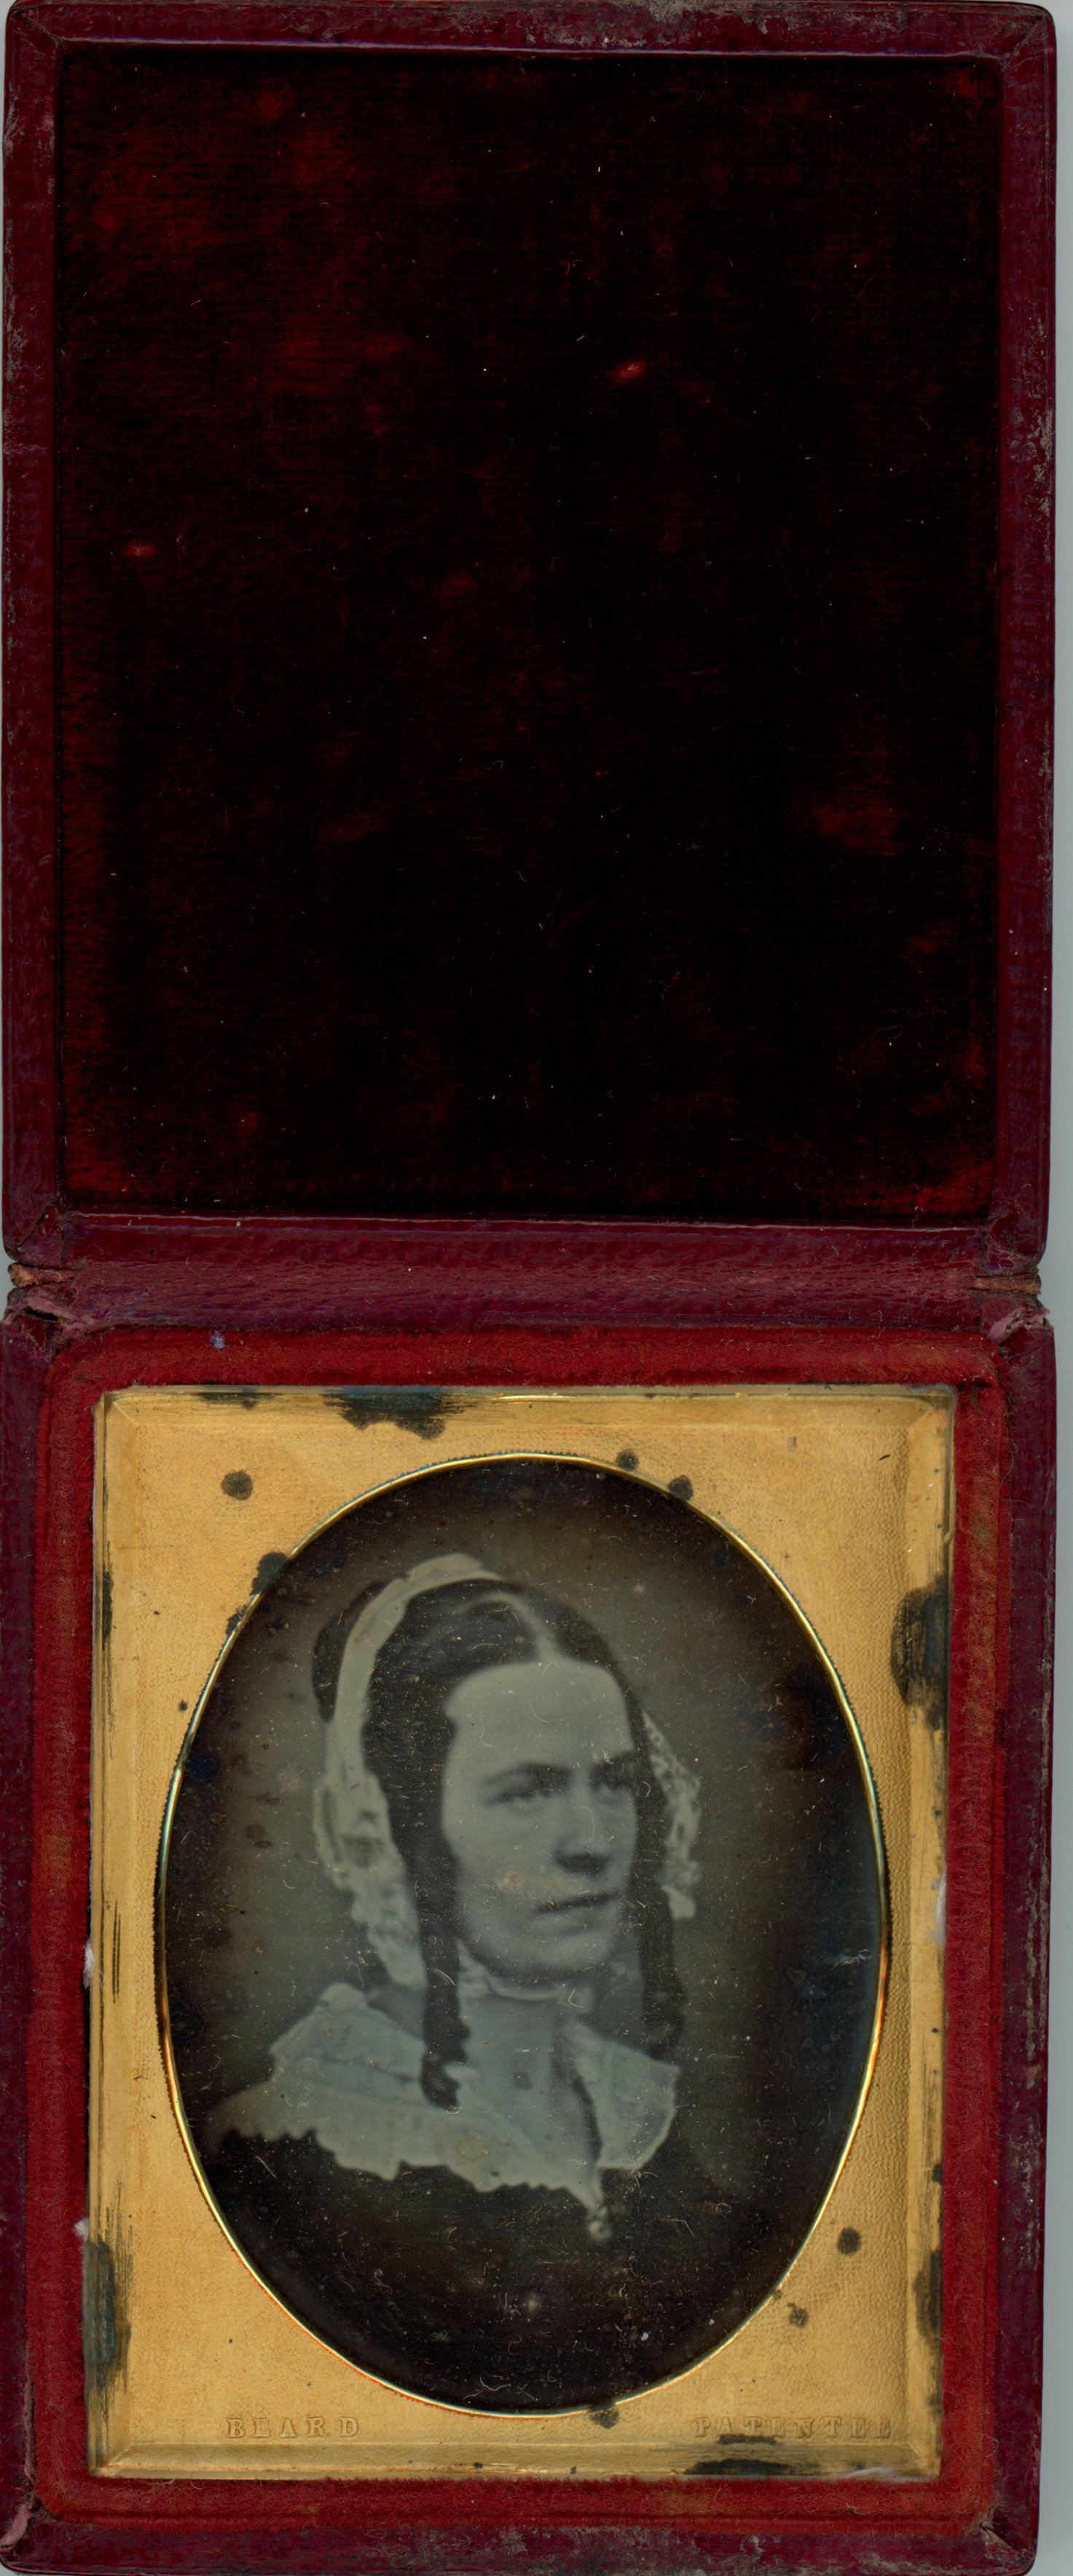 ninth plate, 1841–1843, 2 x 2½ in. Collection of Steve Edwards.